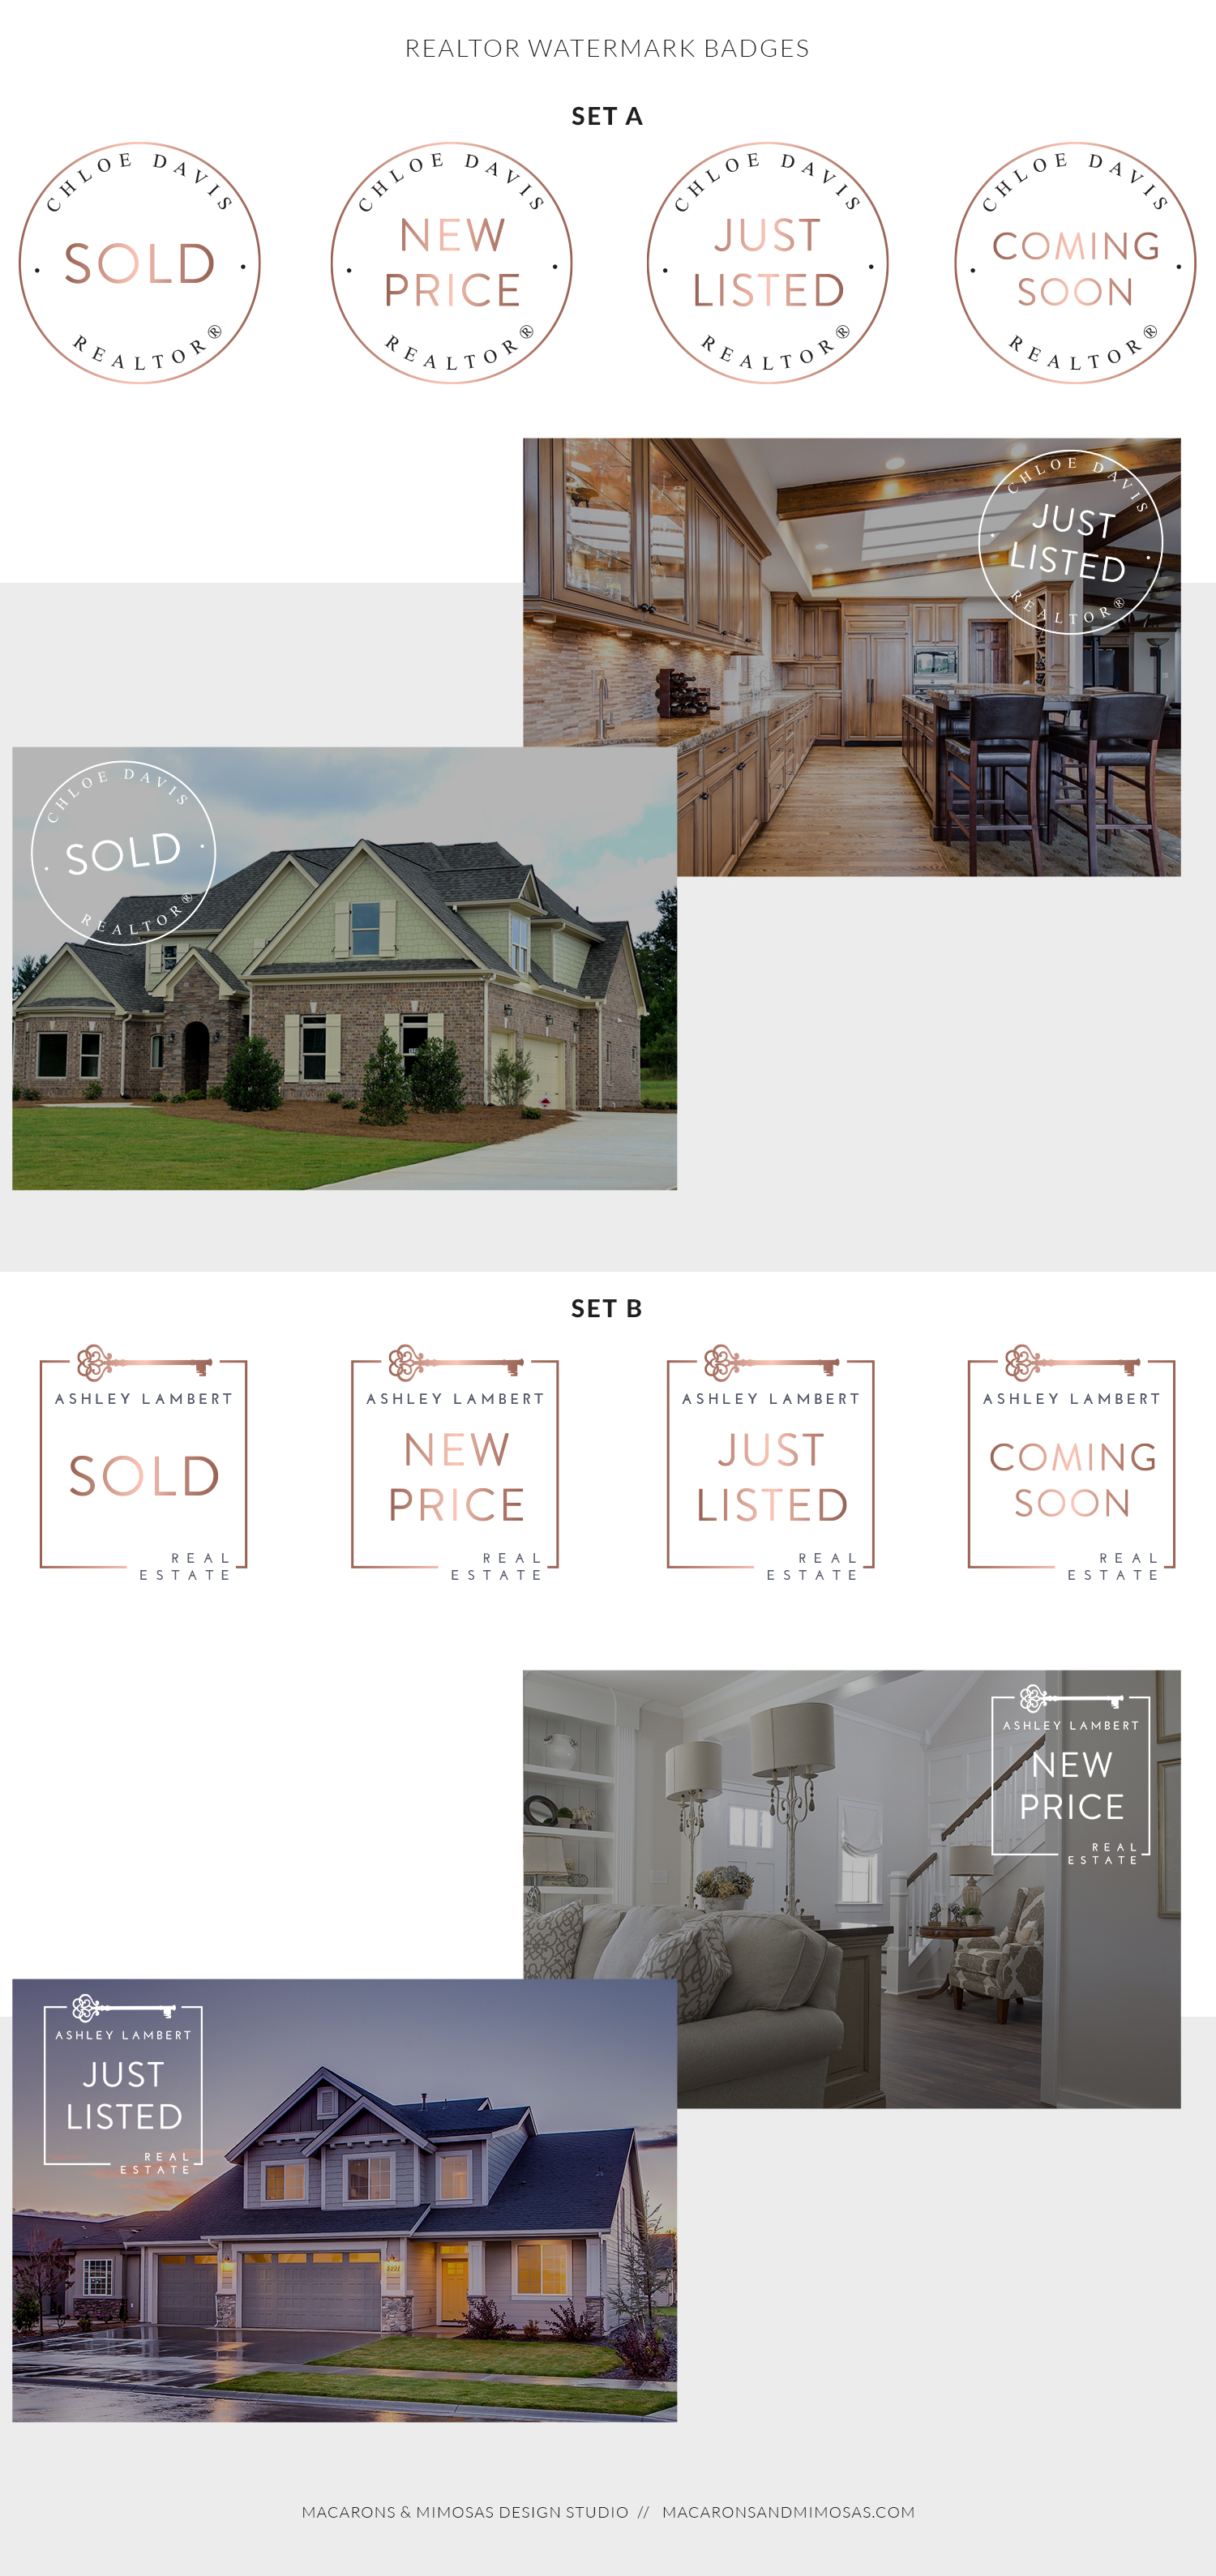 Realtor watermark badges, real estate sold sign graphic, realtor website graphics, just listed watermarks, coming soon watermark badges